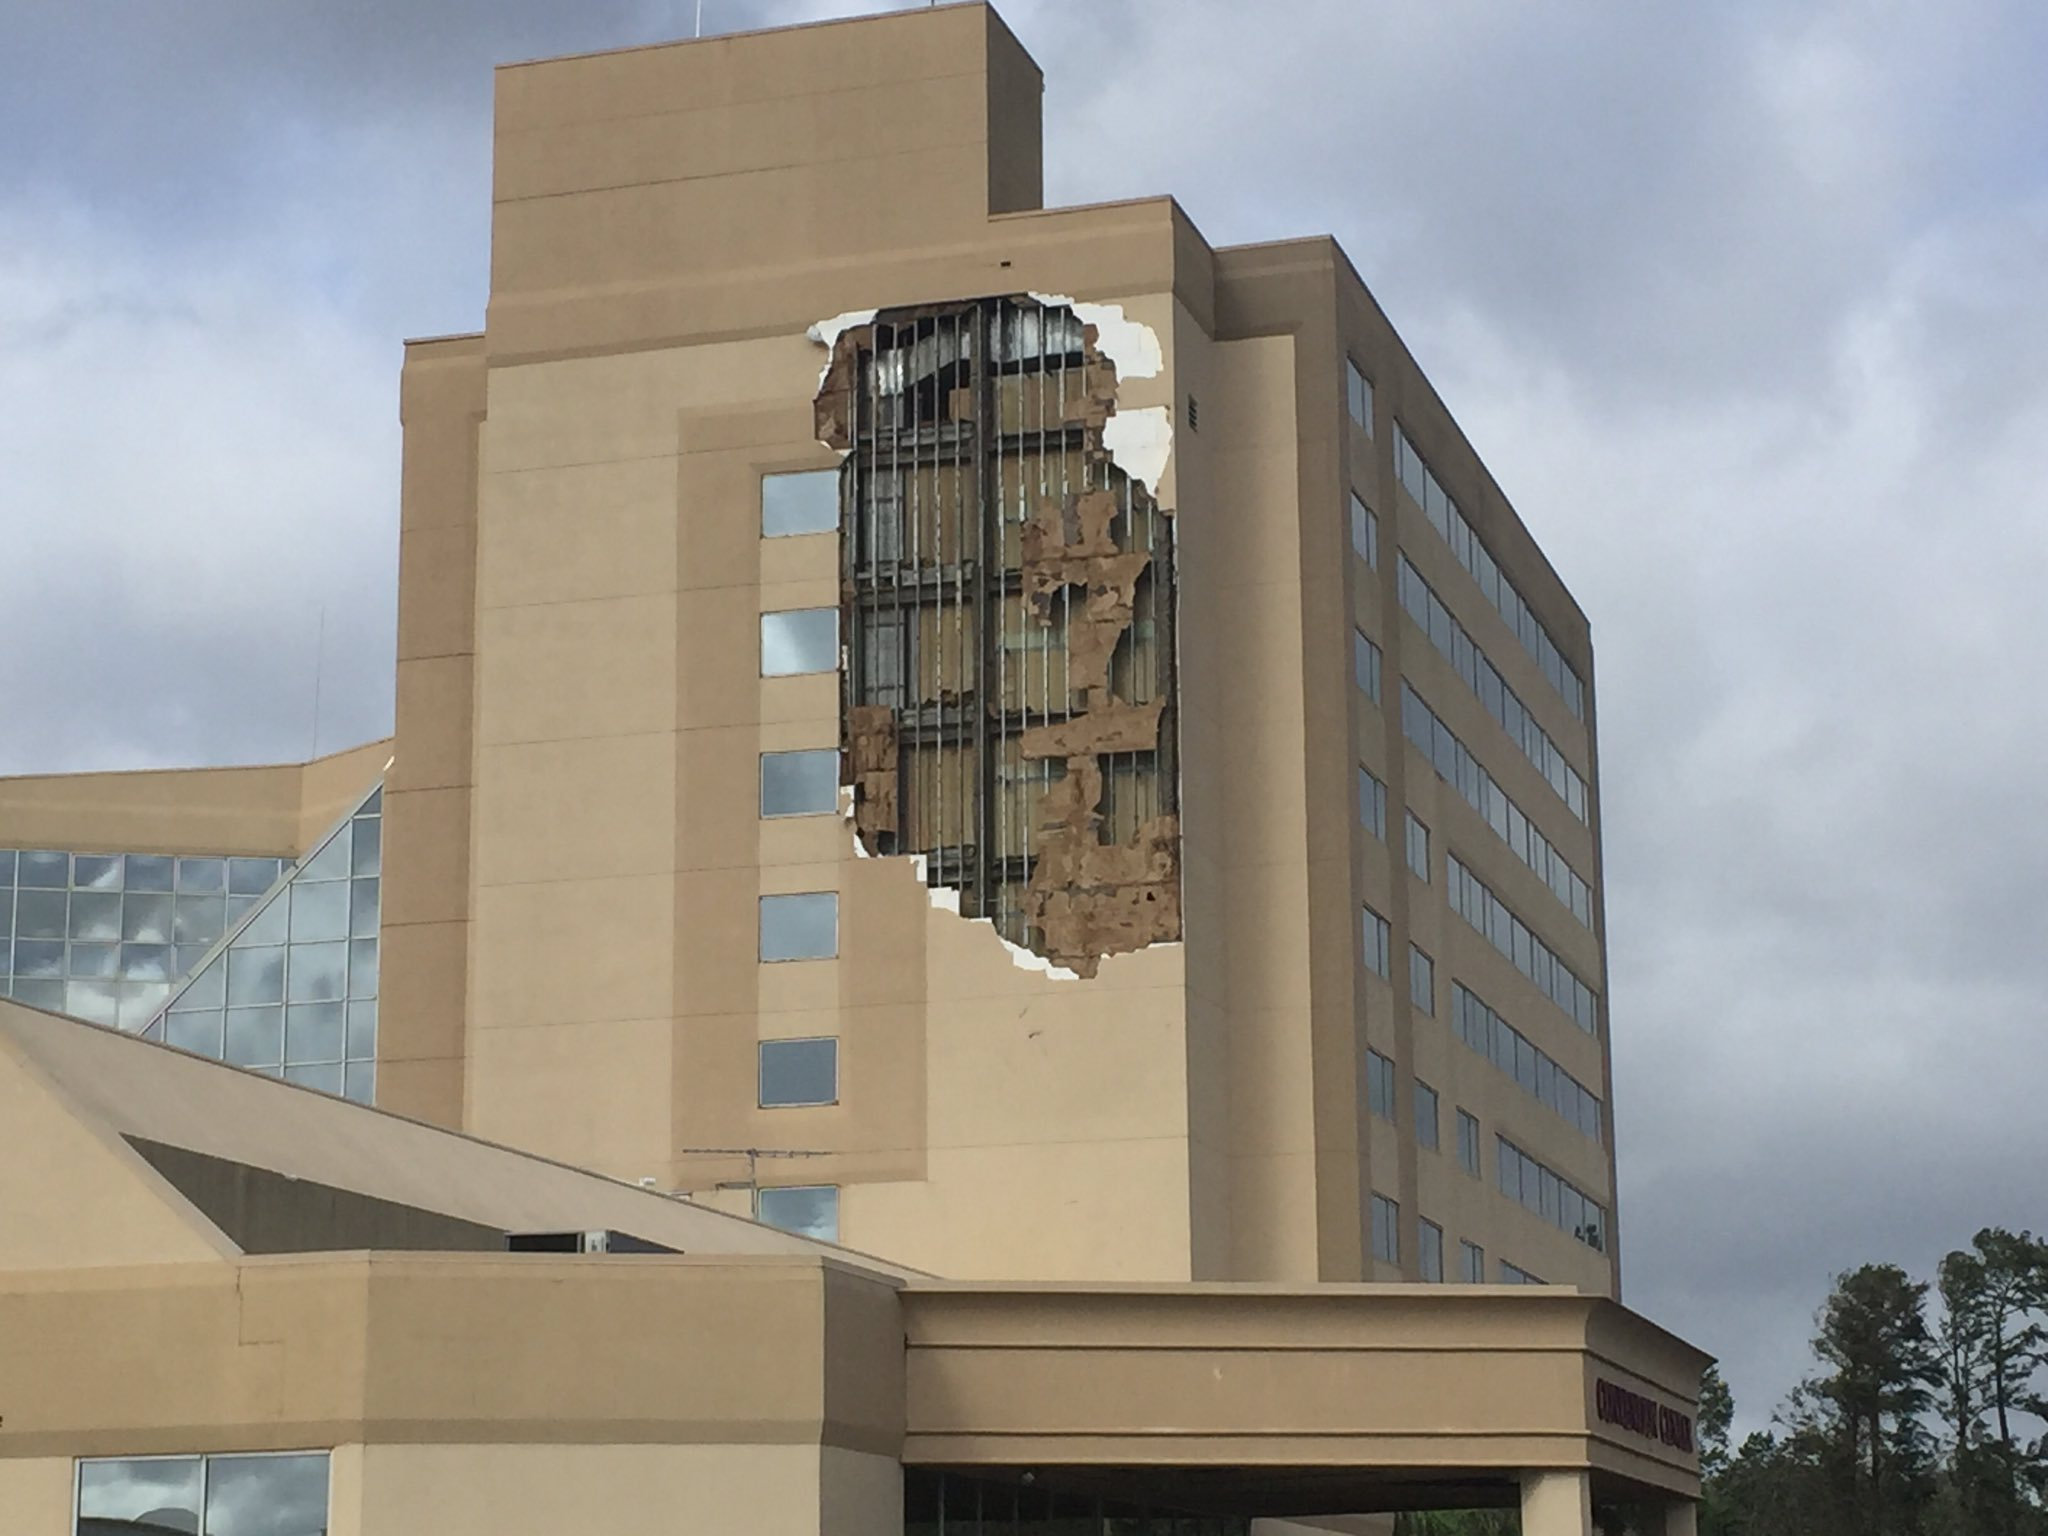 <div class='meta'><div class='origin-logo' data-origin='none'></div><span class='caption-text' data-credit='Roy Ramos/WFTV'>A DoubleTree hotel by the Orlando Airport had part of its side ripped off by Hurricane Irma.</span></div>